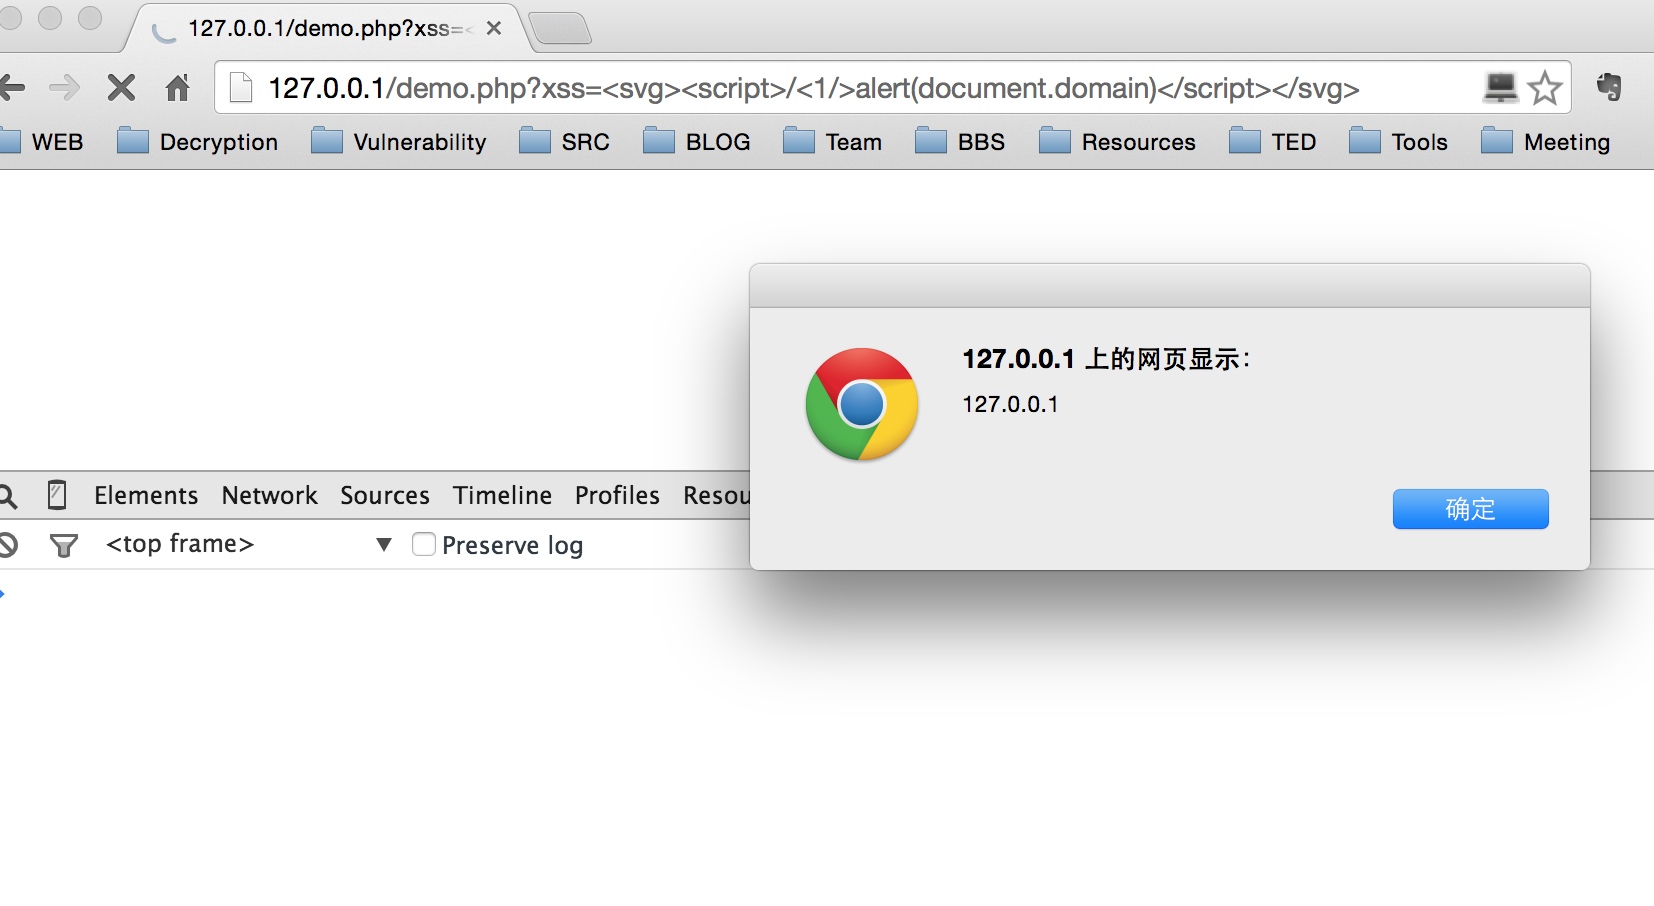 Google Chrome Anti-XSS Filter Bypass - Posted By Tr3jer